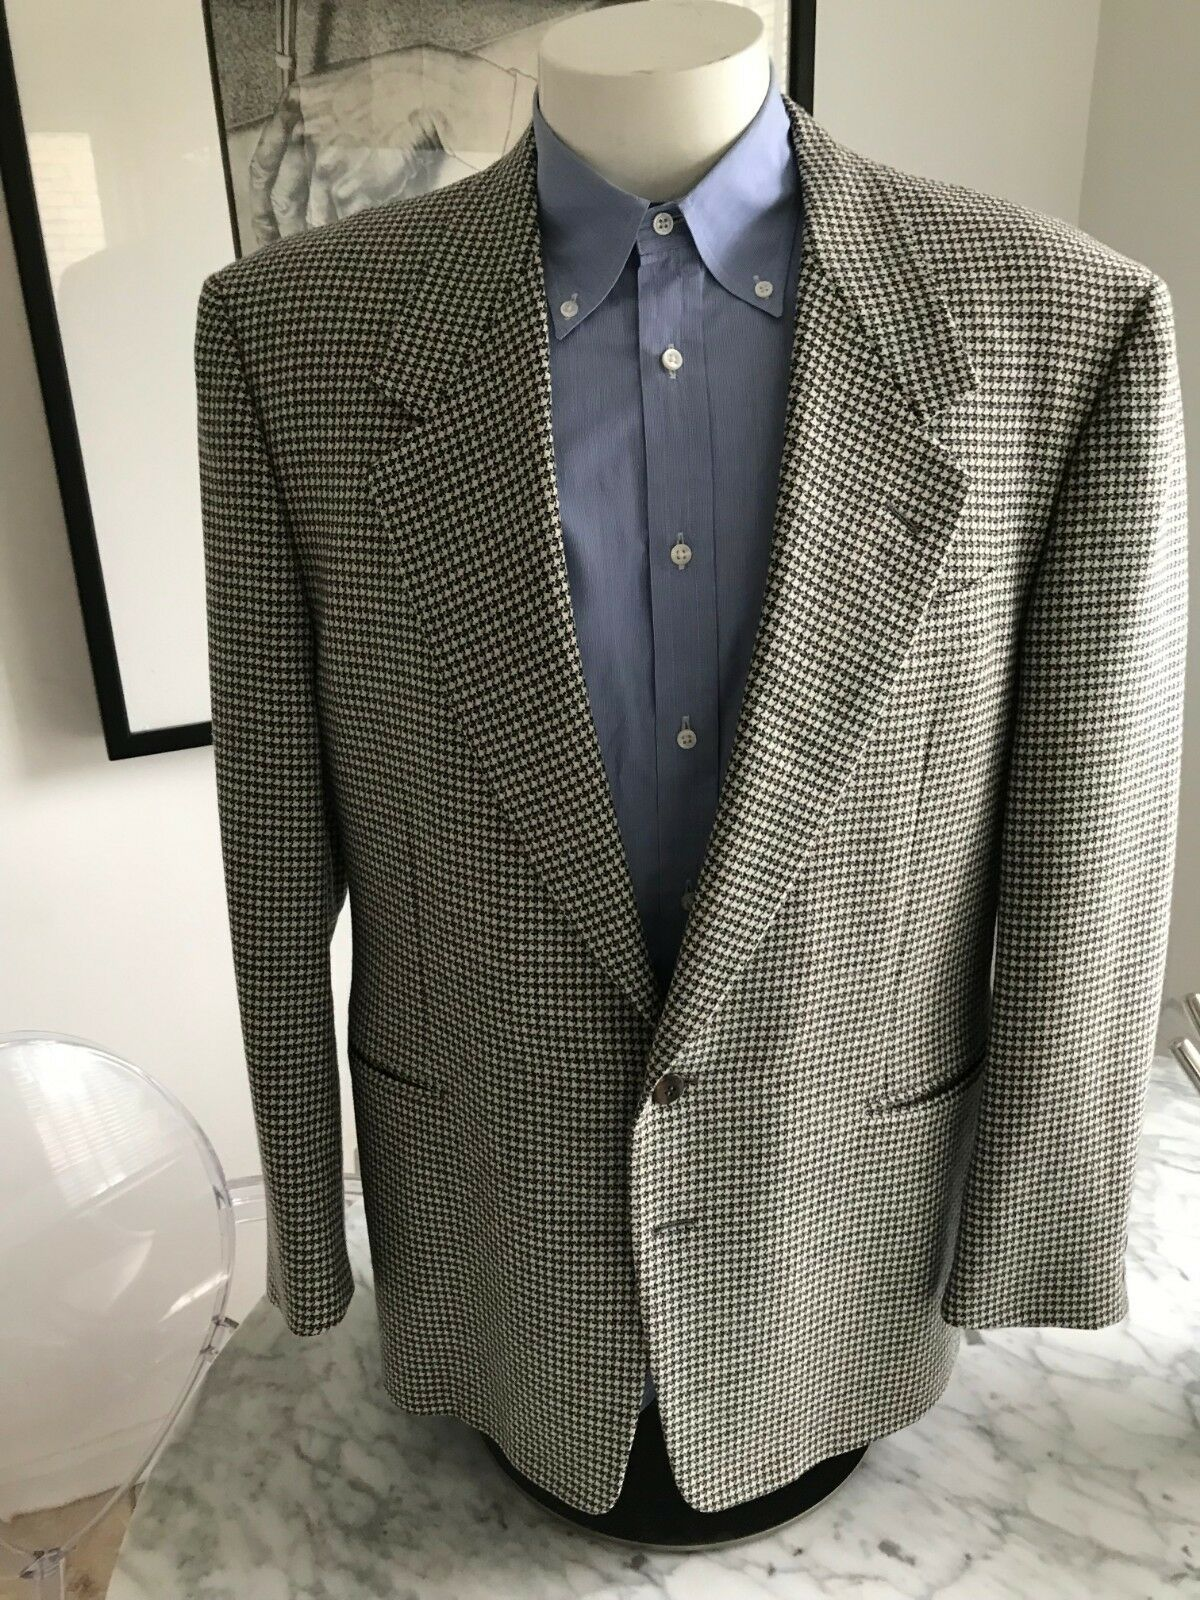 a224e0a09 Men's CANALI Recent Wool Cashmere Sport Coat. R US 42R. ITALY. Blend Label  nfyvdf7907-Suits & Tailoring